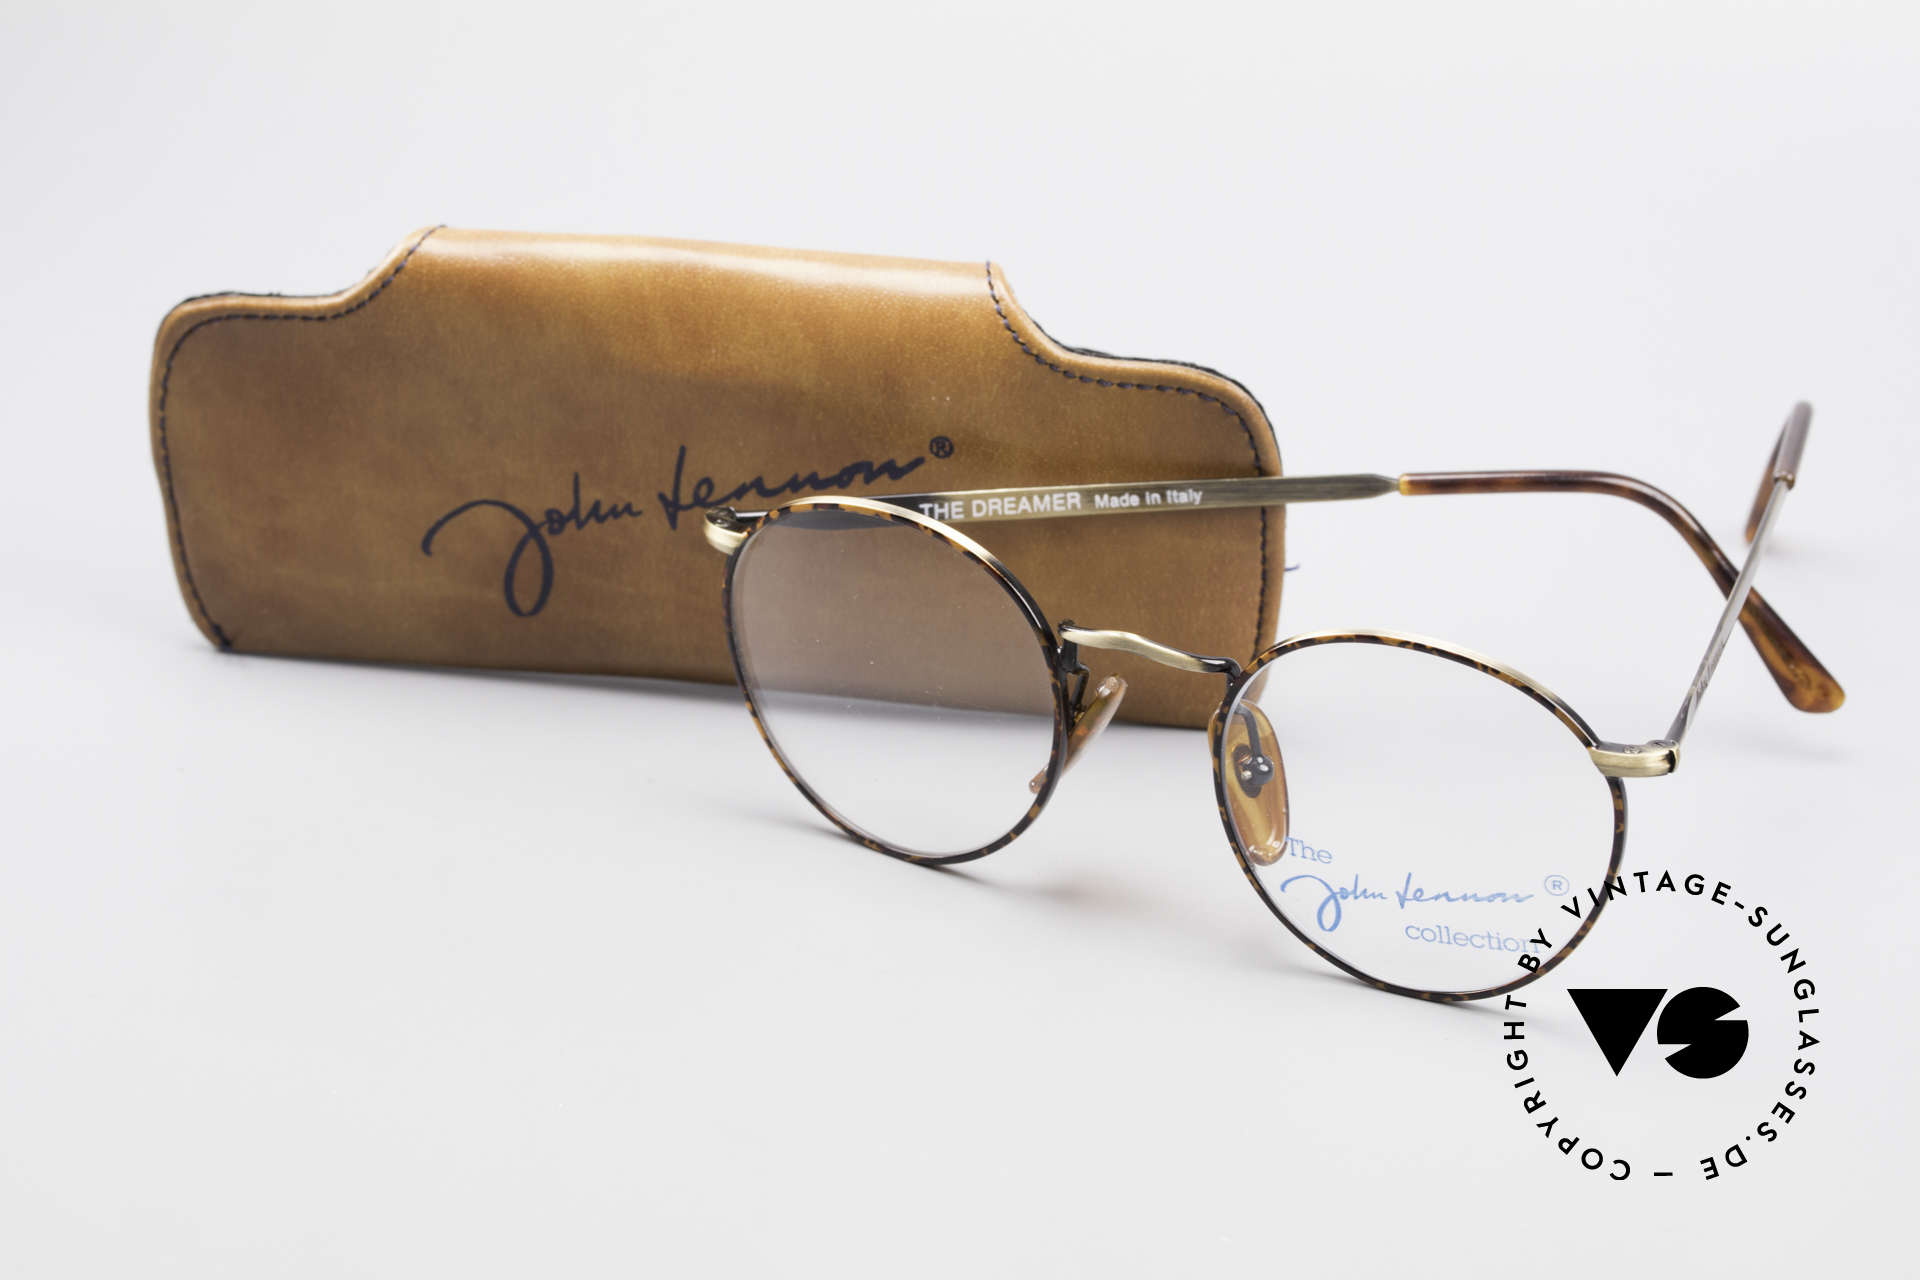 John Lennon - The Dreamer Very Small Vintage Glasses, never worn (like all our vintage John Lennon eyeglasses), Made for Men and Women